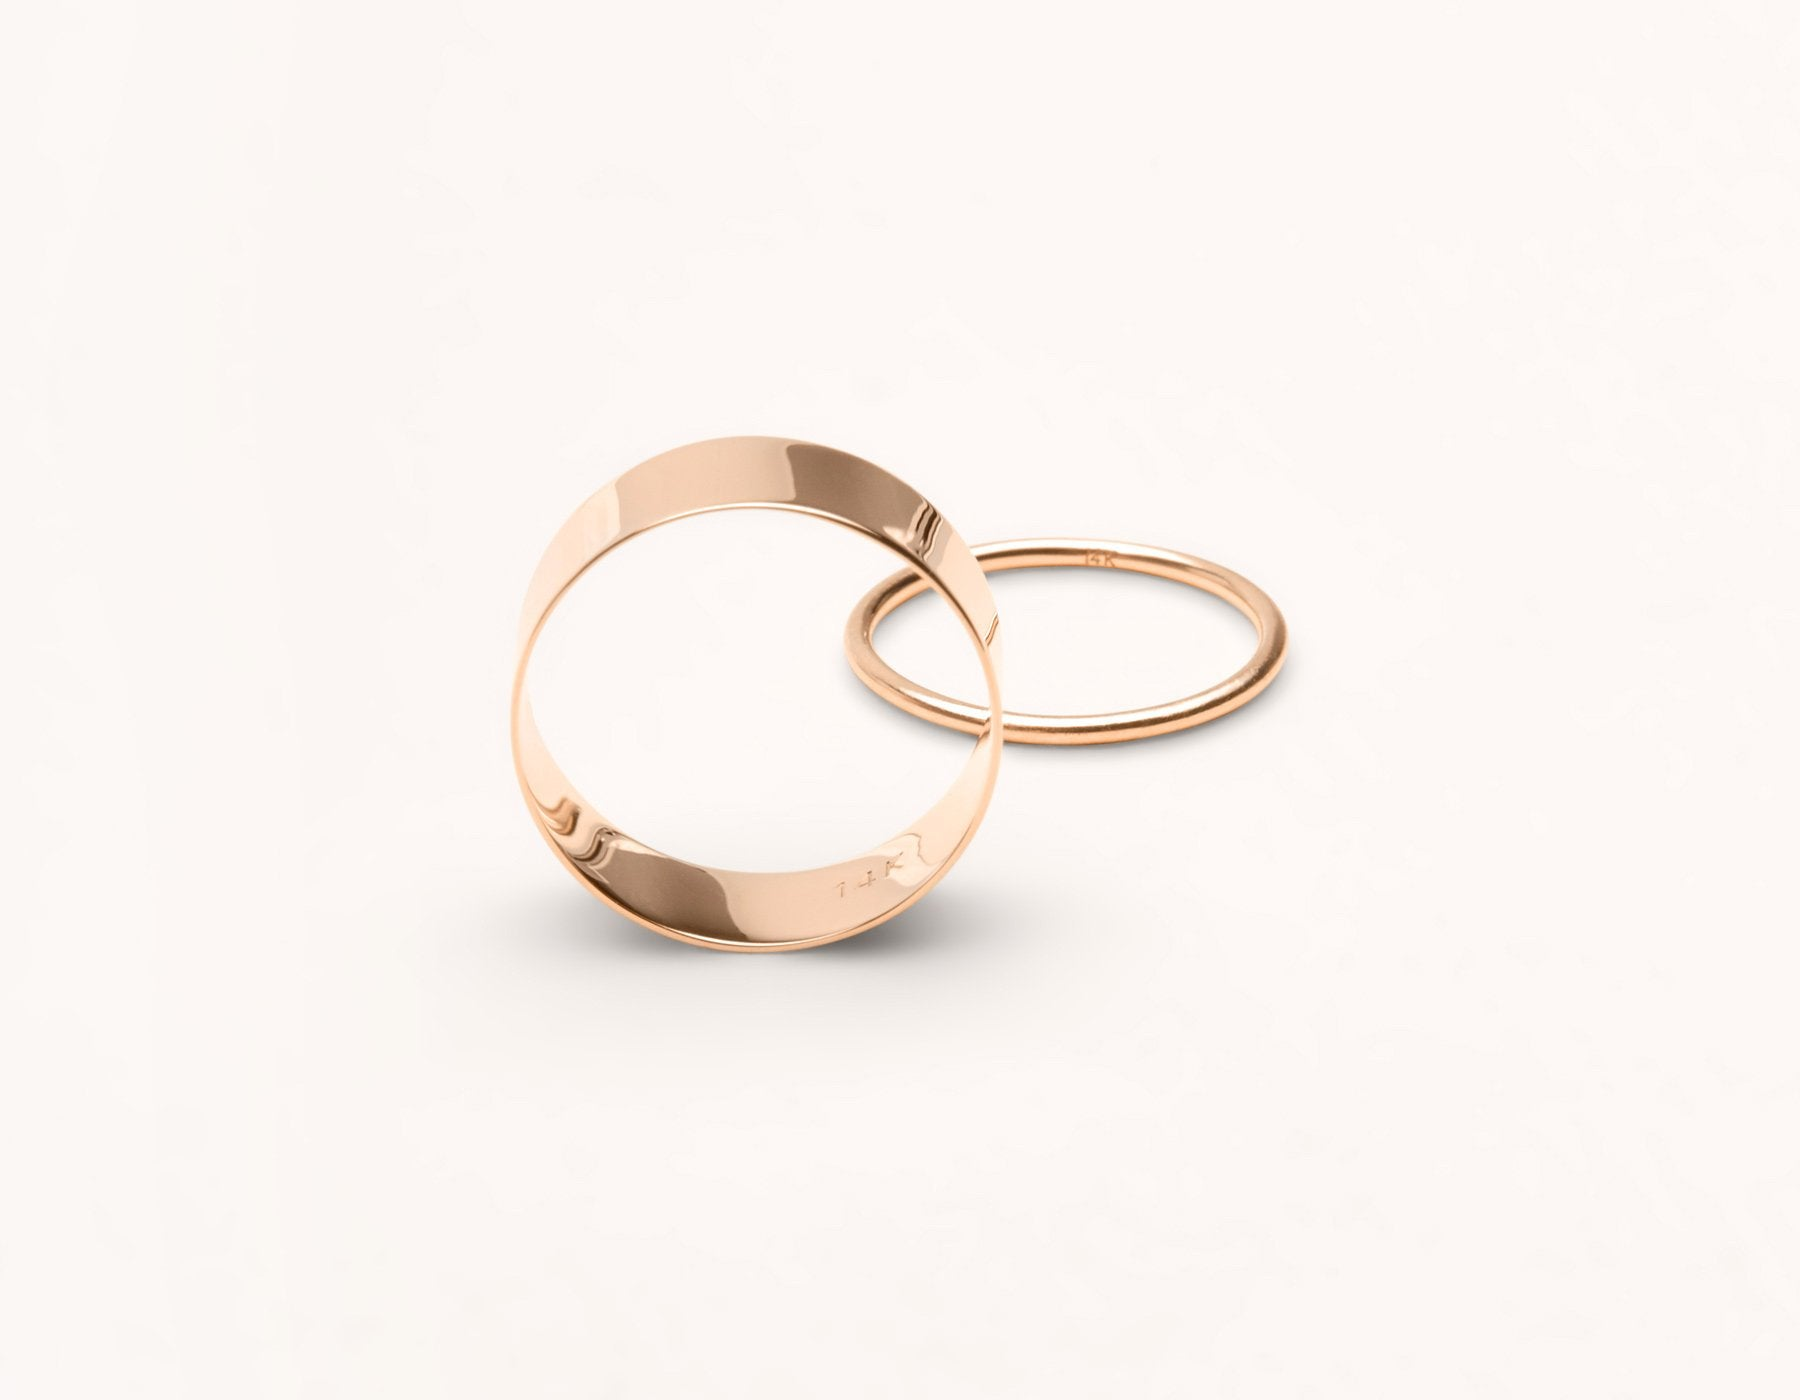 14k solid gold Modern Minimalist Vrai & Oro Thick Stacking Ring Skinny Stacker, 14K Rose Gold